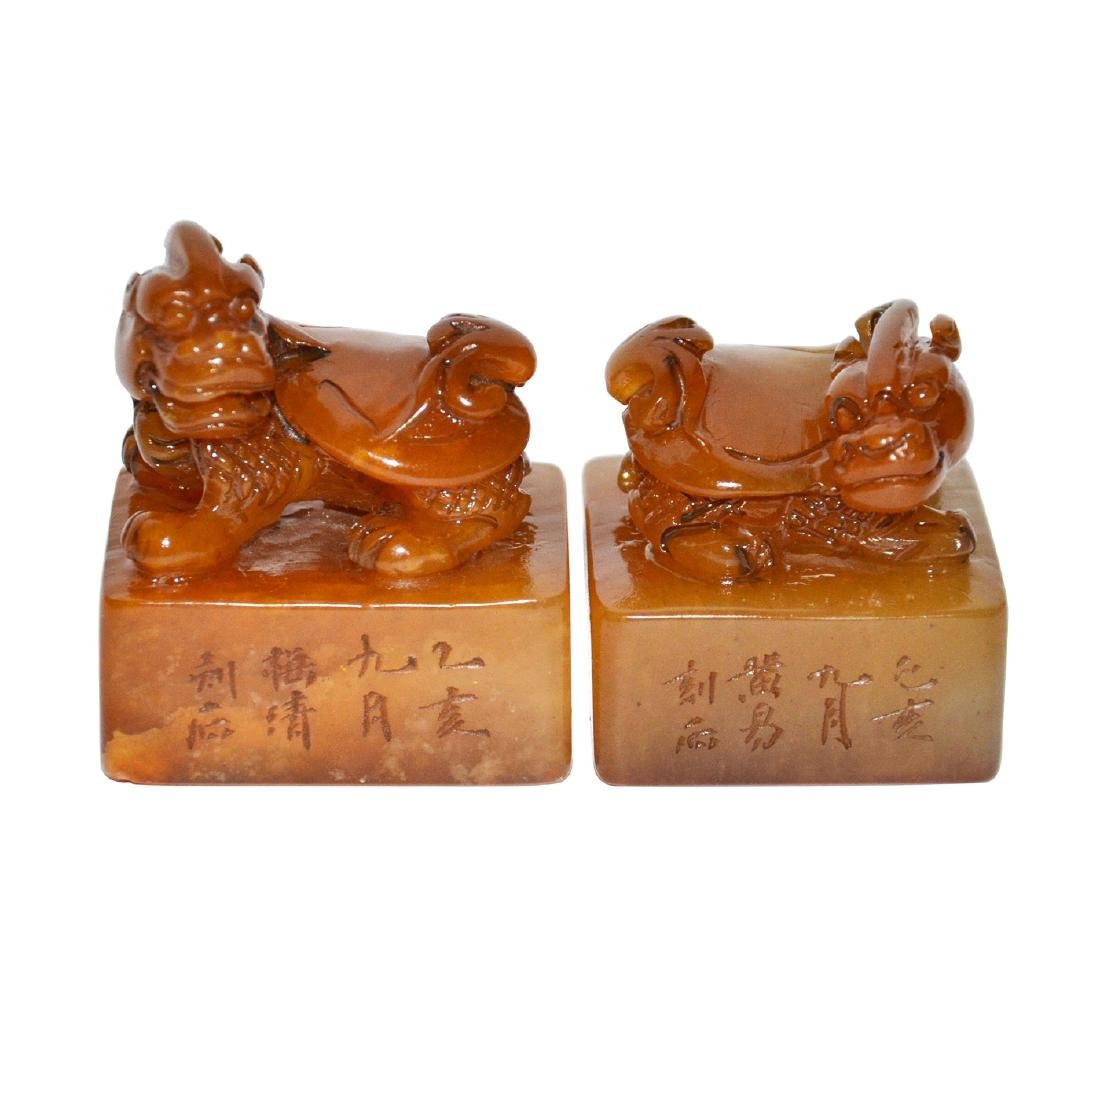 Qing Dynasty, A Pair of Tianhuang Stone Seal with